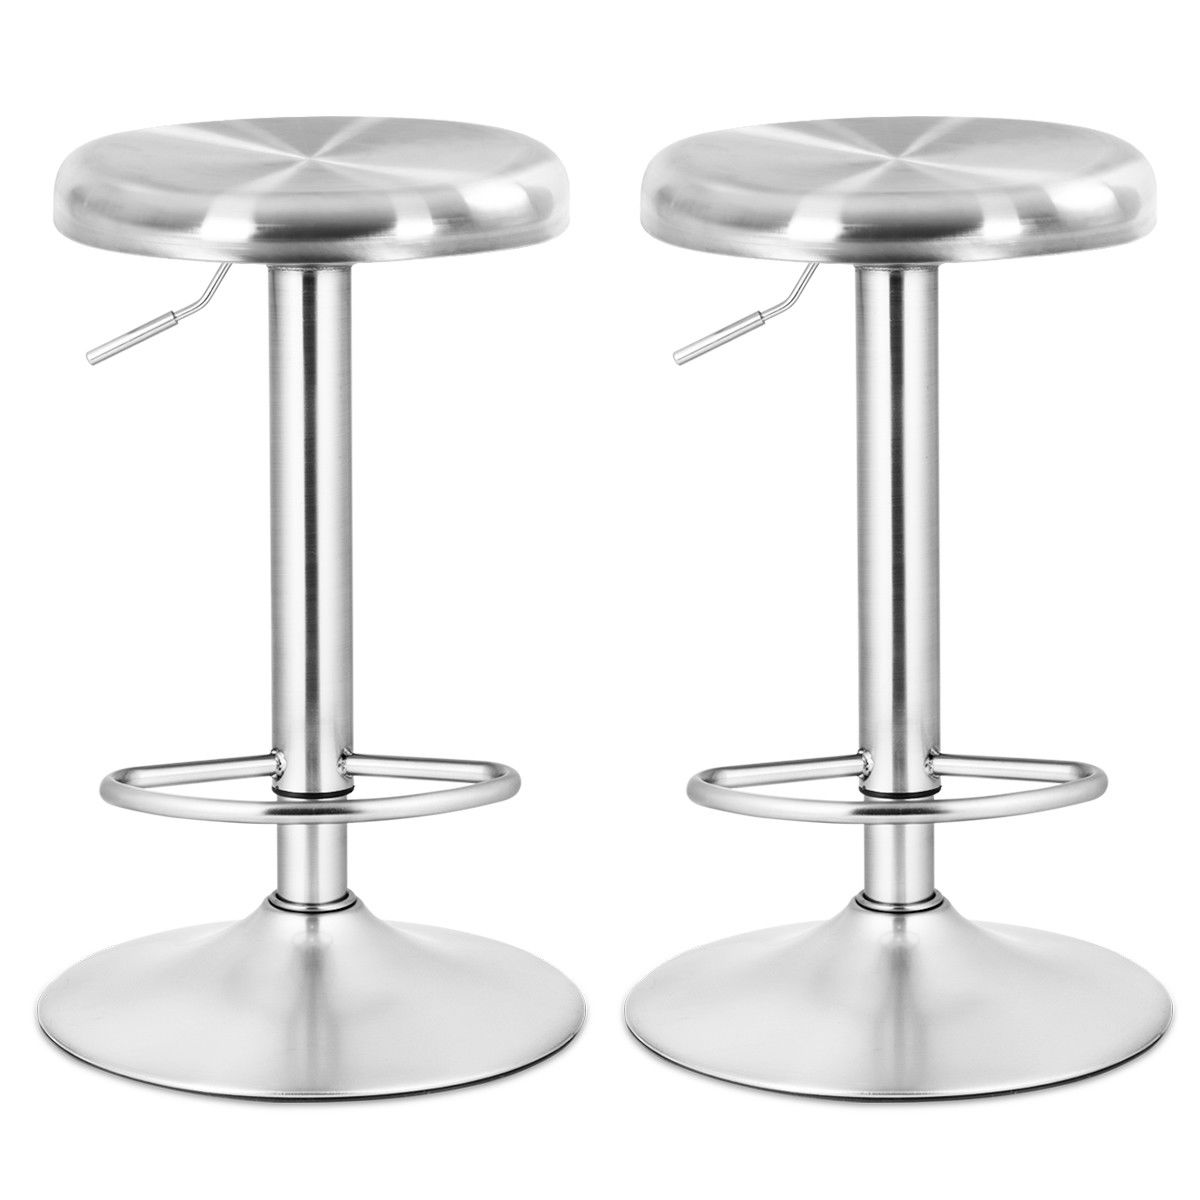 Costway 2 Pcs Brushed Stainless Steel Swivel Bar Stool Seat Adjustable Height Round Top